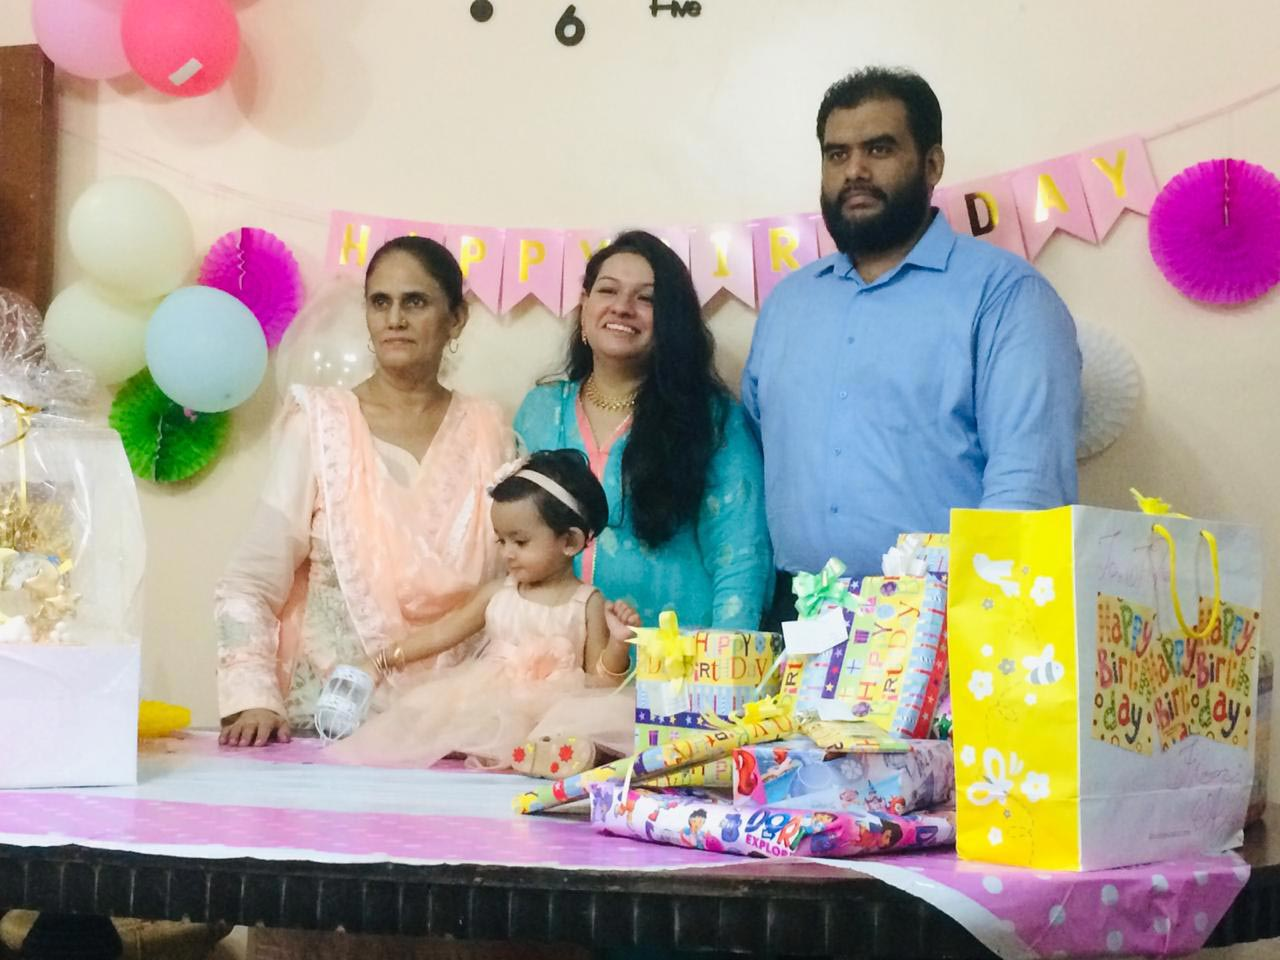 Left to Right: Baby Ayra with her grandmother (Dadi), Rudaba Irshad and her parents, Bilal A. Khan and Faryal Khan.